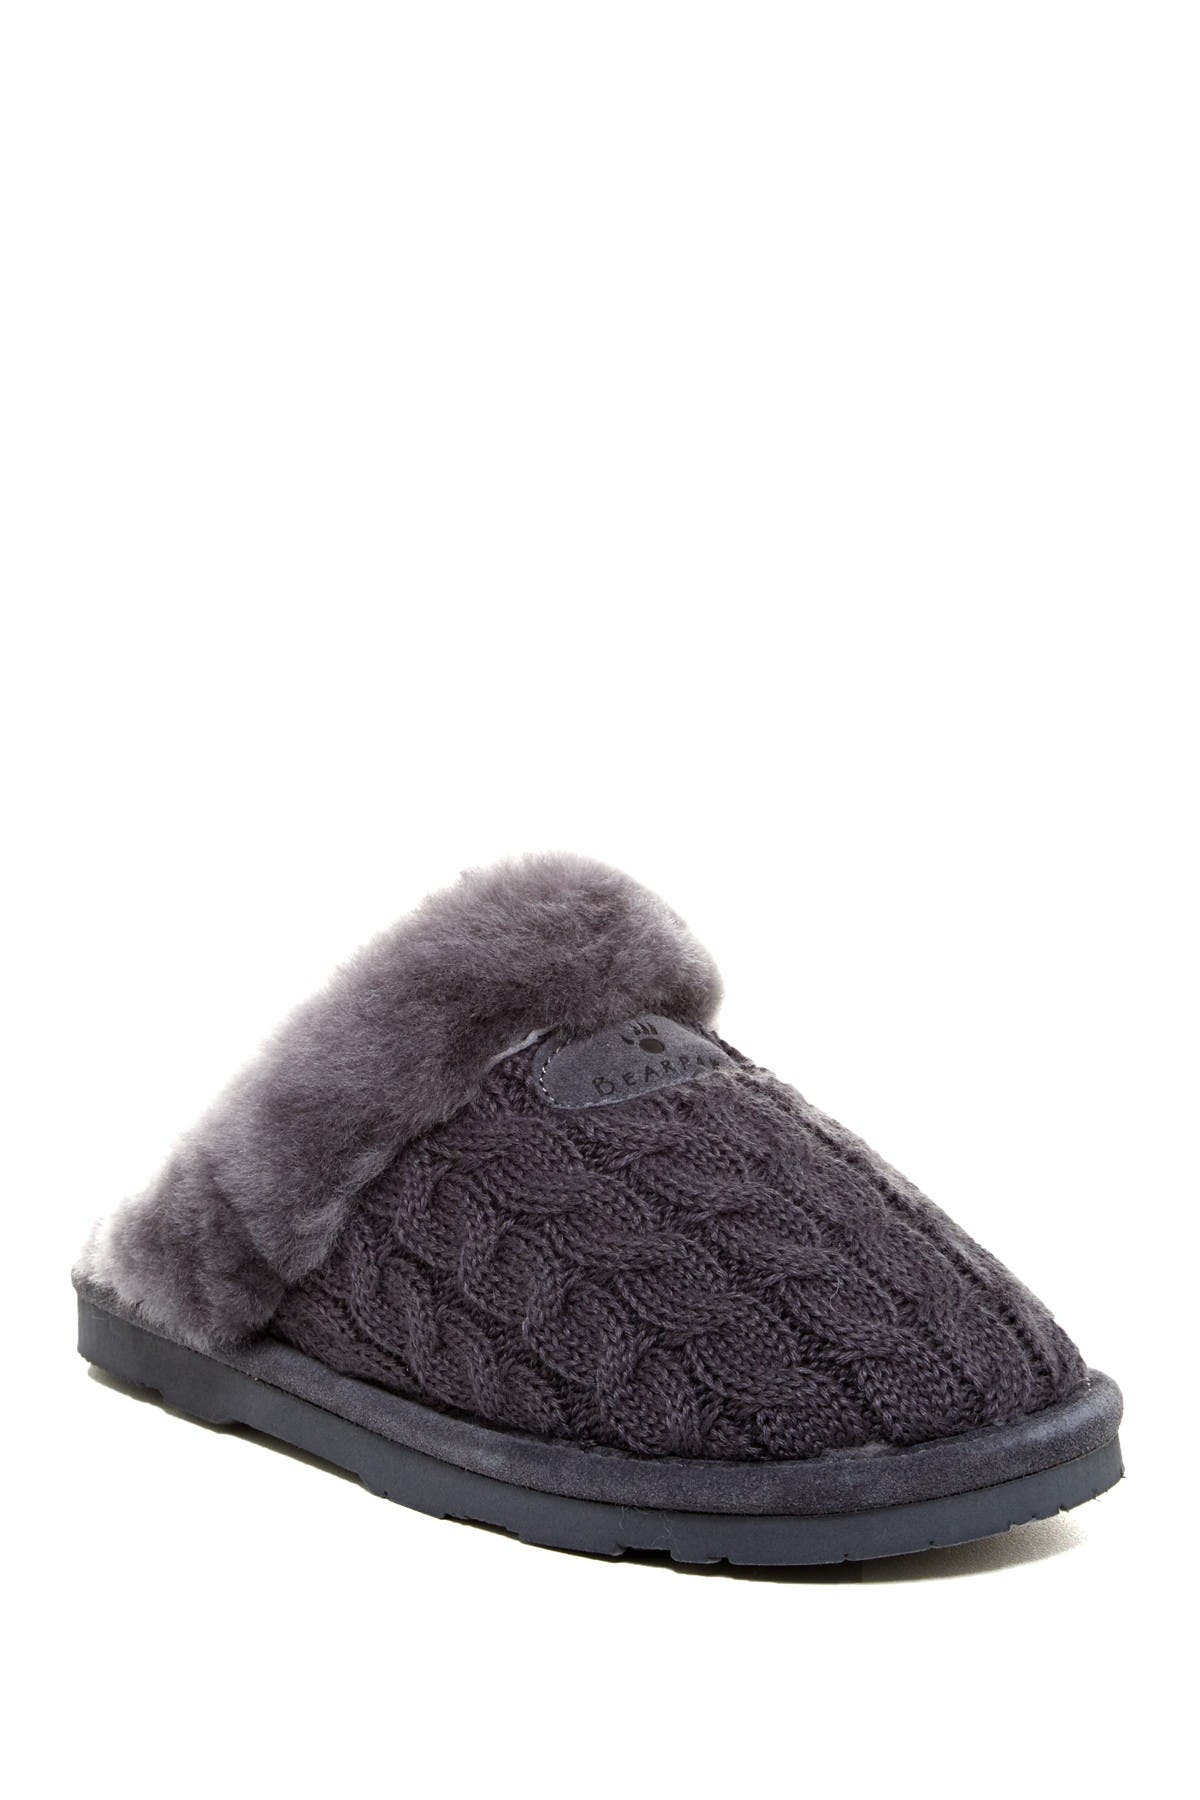 Image of BEARPAW Effie Genuine Sheepskin Fur Lined Slipper